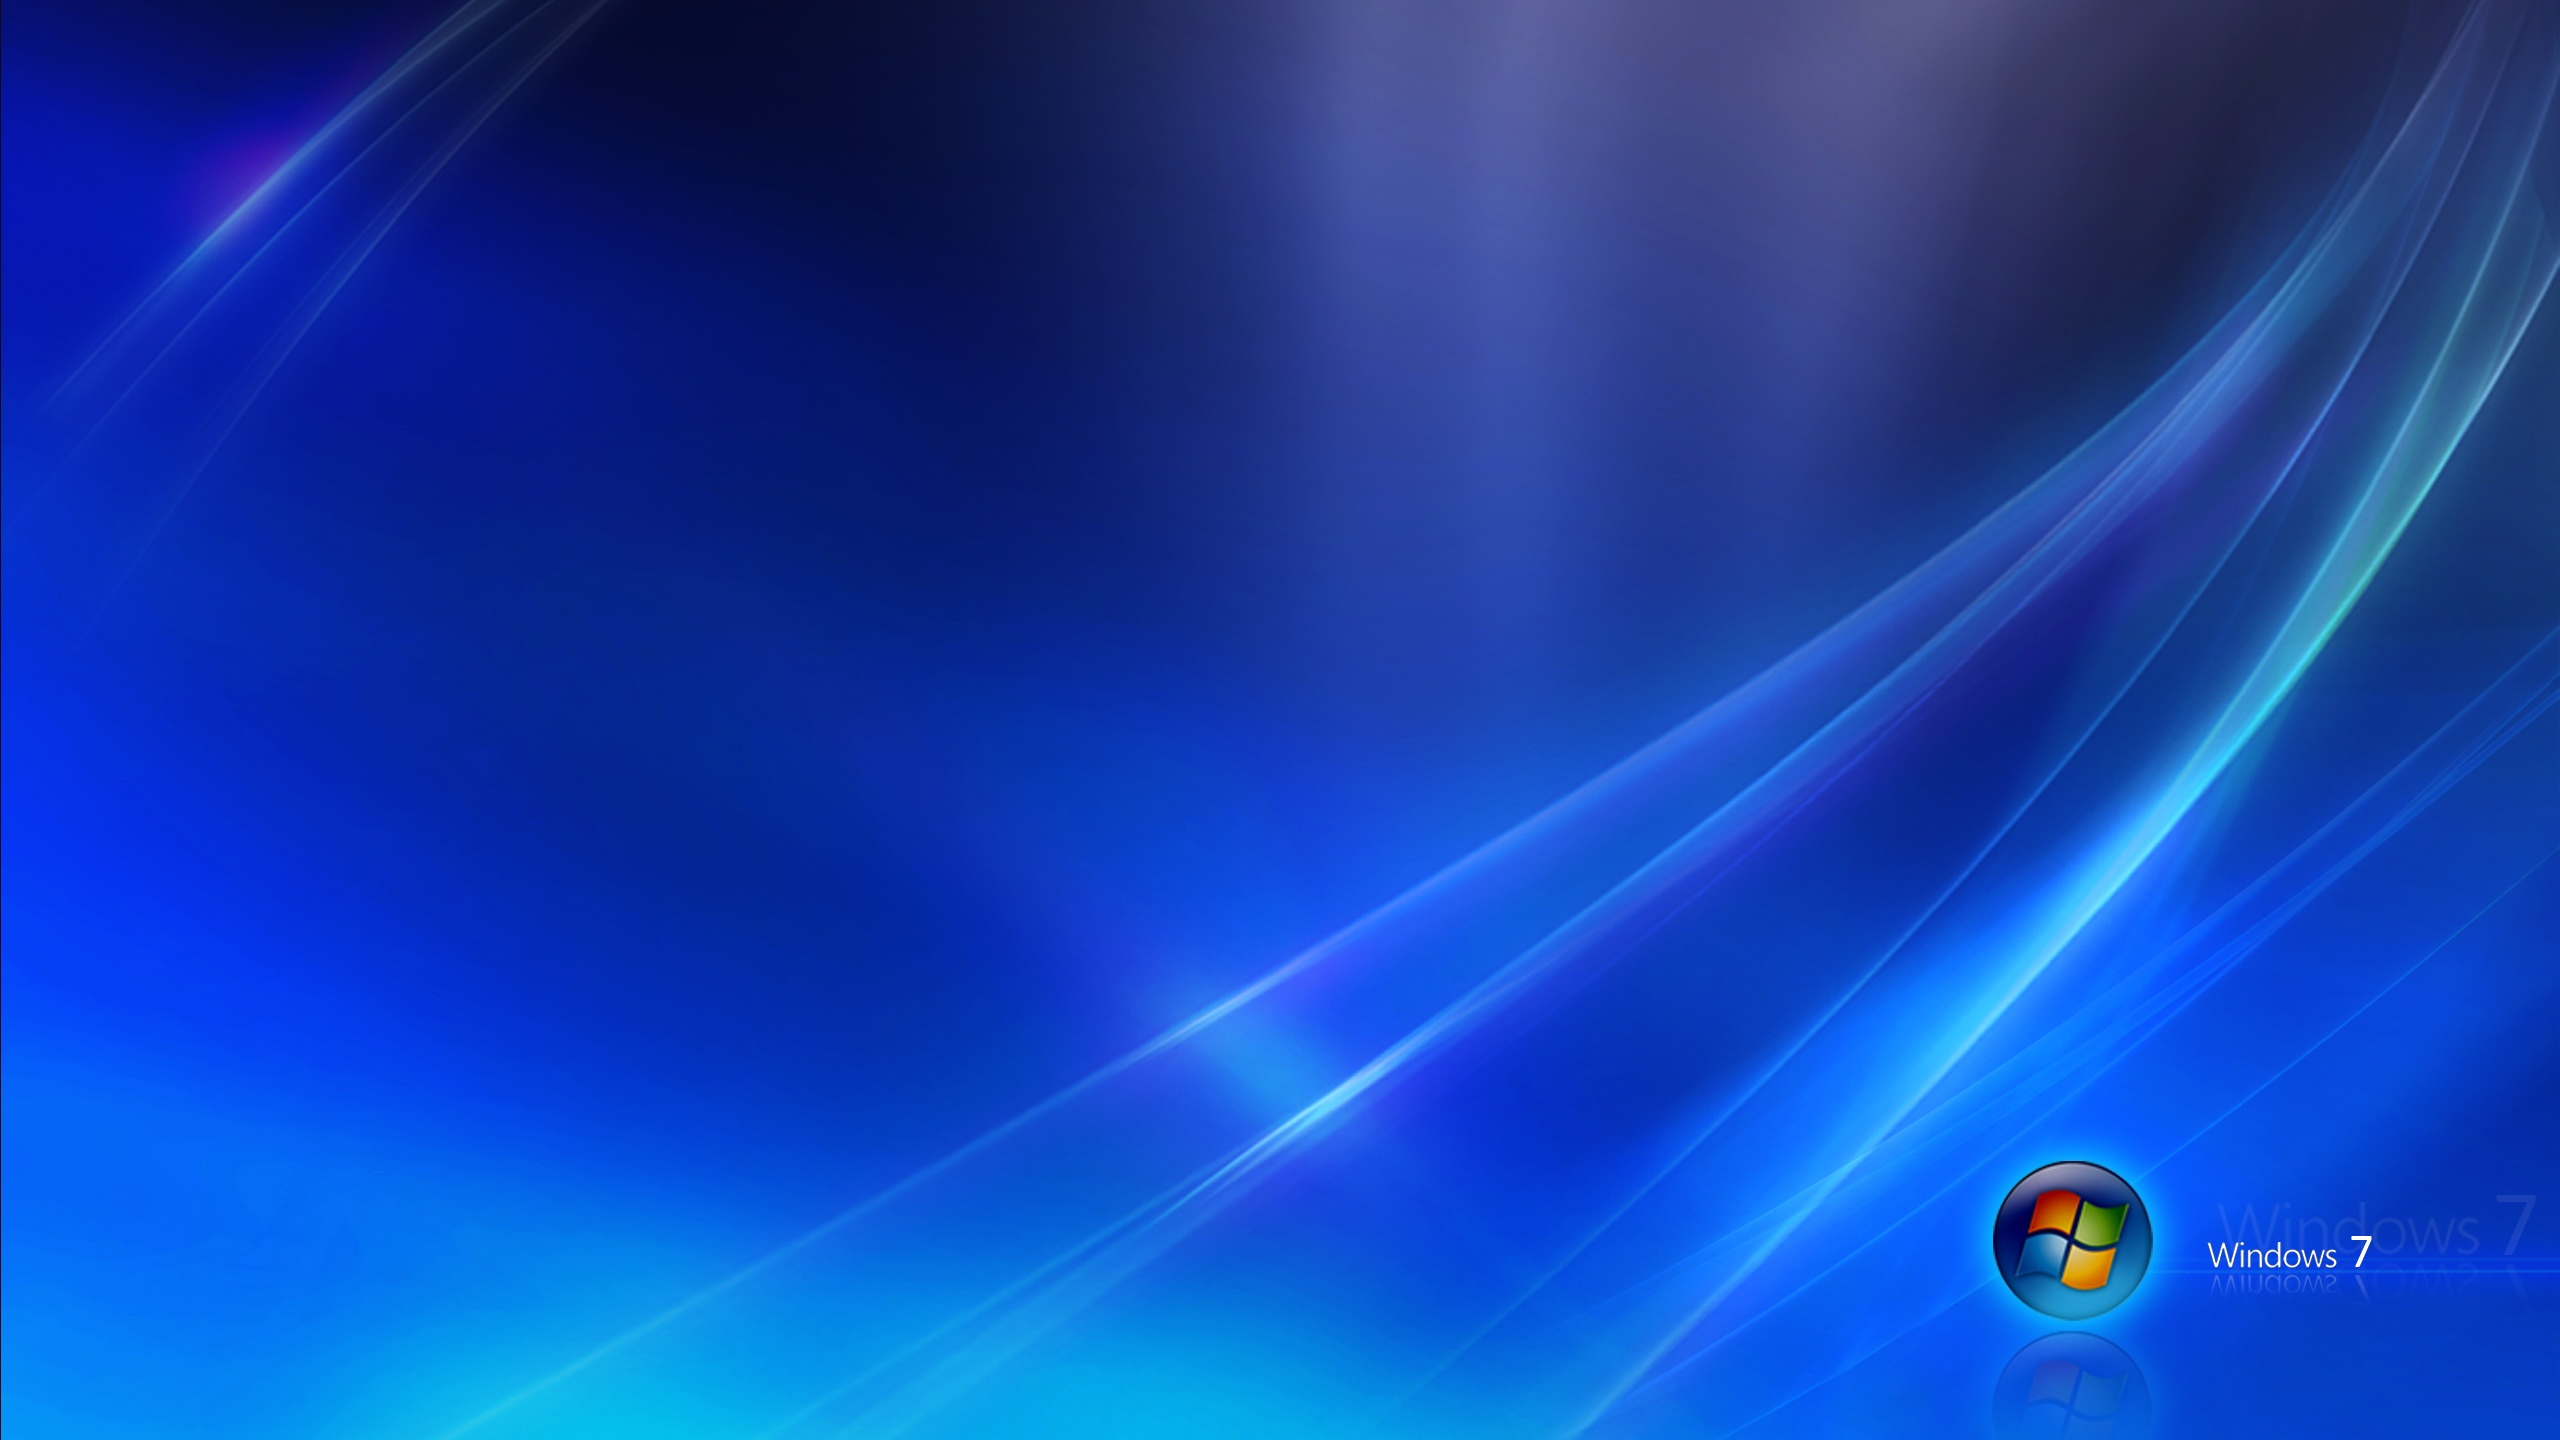 2560x1440 Windows 7 blue desktop PC and Mac wallpaper 2560x1440